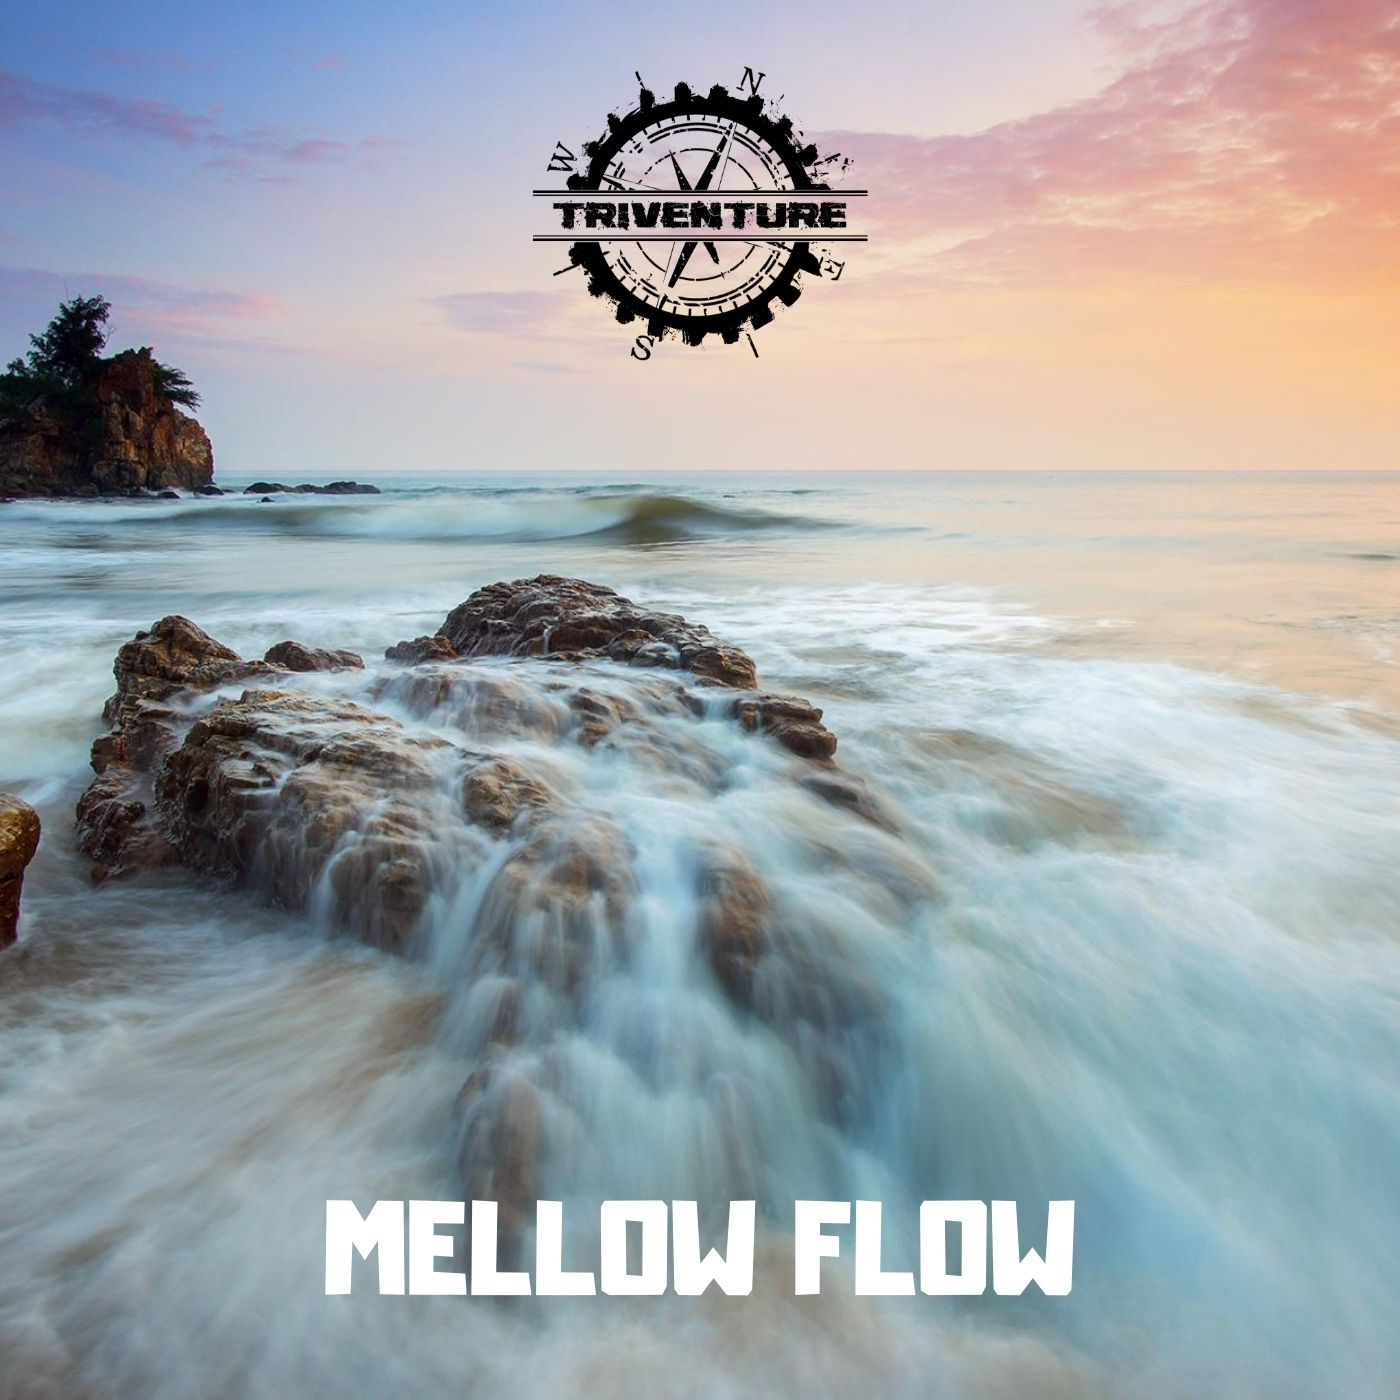 Triventure on Spotify - Mellow Flow